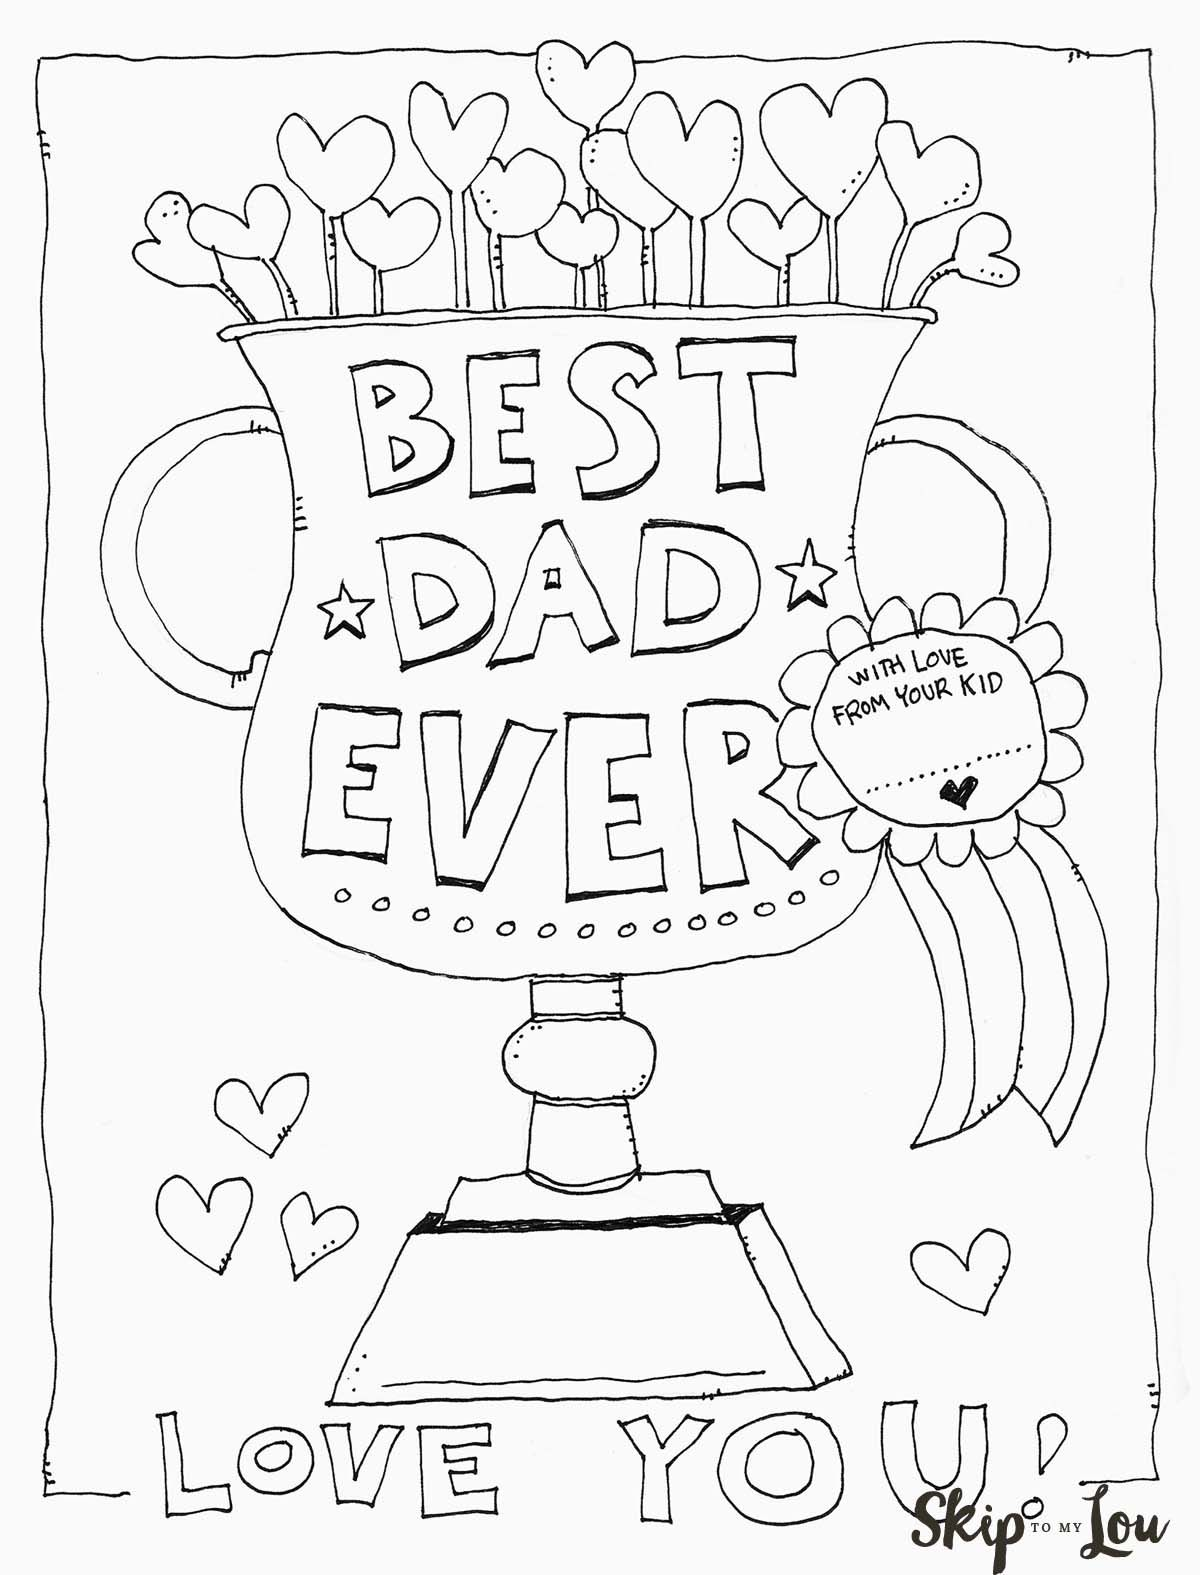 Free Printable Dad Coloring Page For Fatheru0027s Day. This Cute Coloring Sheet  Makes The Perfect Fatheru0027s Day Card. Every Dad Will Love This Award.